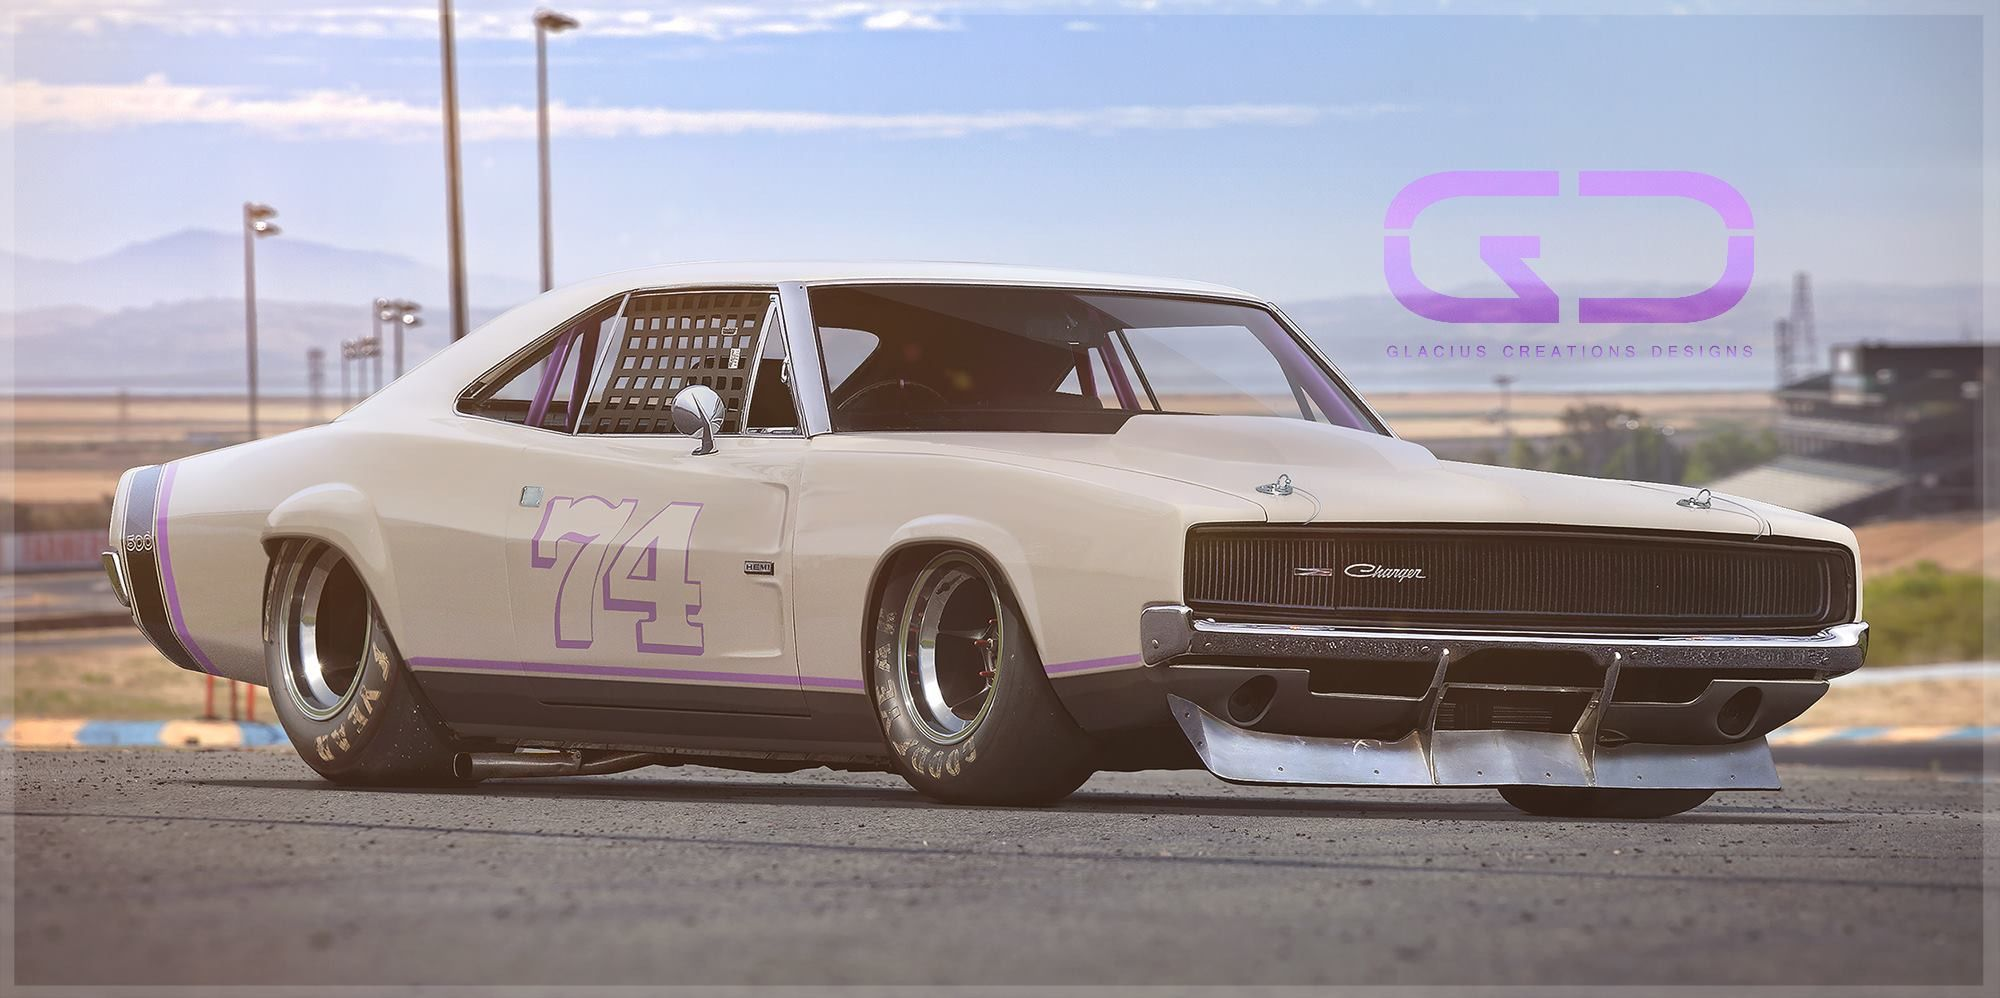 69 dodge charger race car mopar heaven pinterest dodge charger cars and mopar. Black Bedroom Furniture Sets. Home Design Ideas